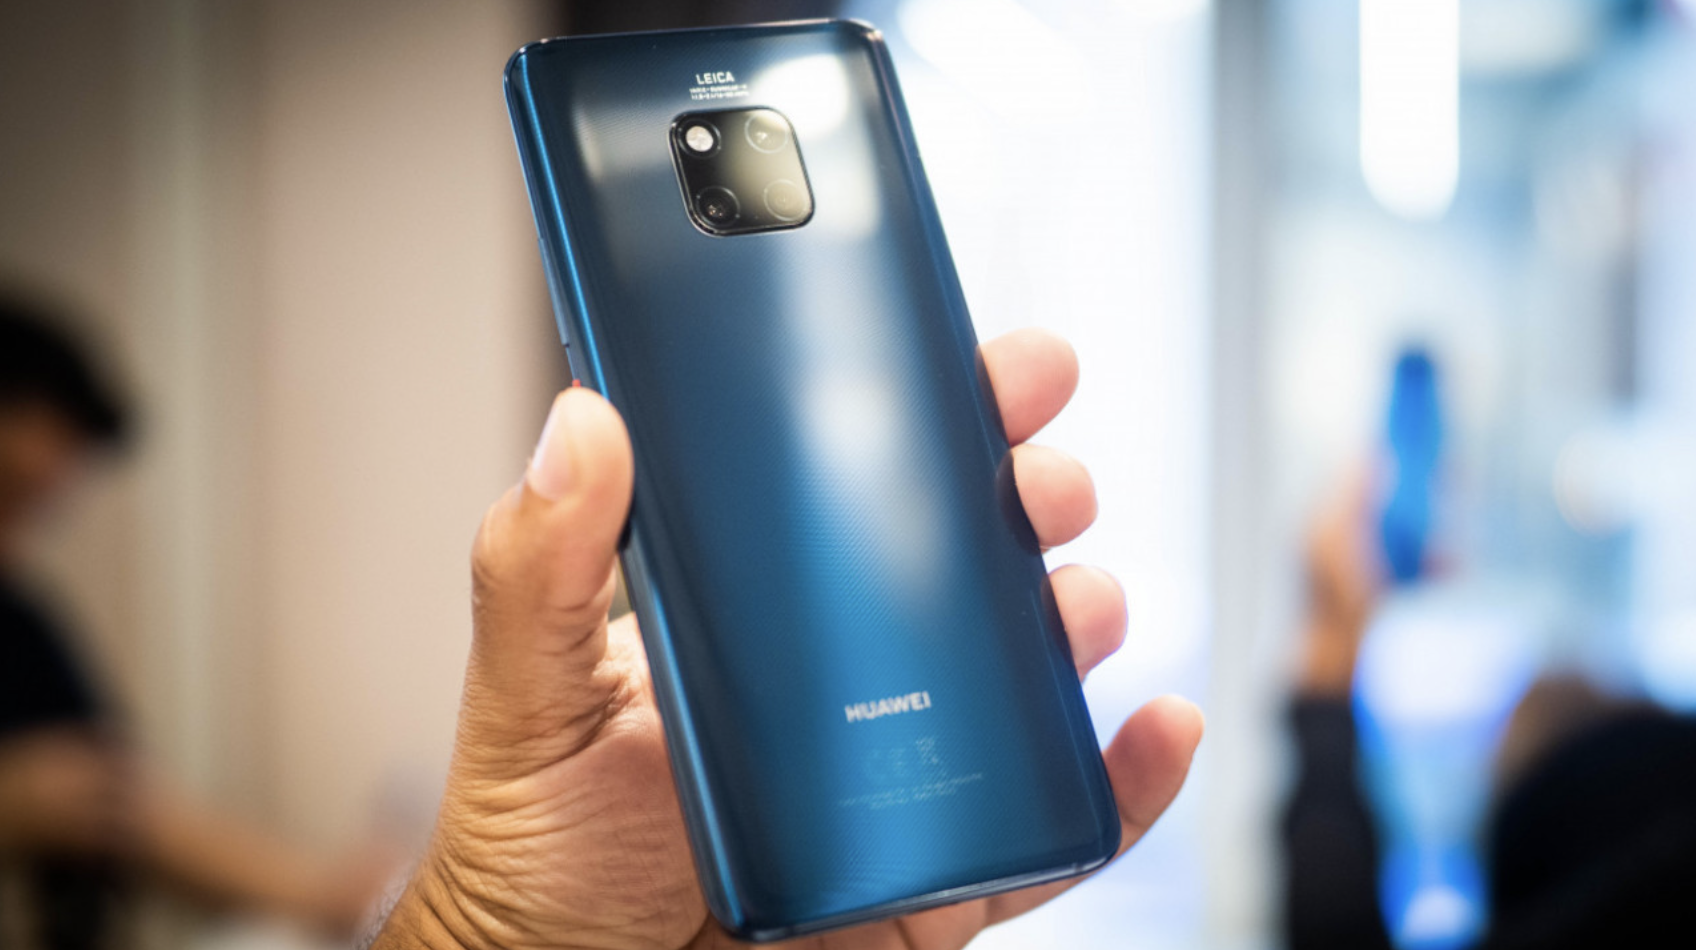 Huawei has unveiled the flagship smartphone Mate 20 Pro